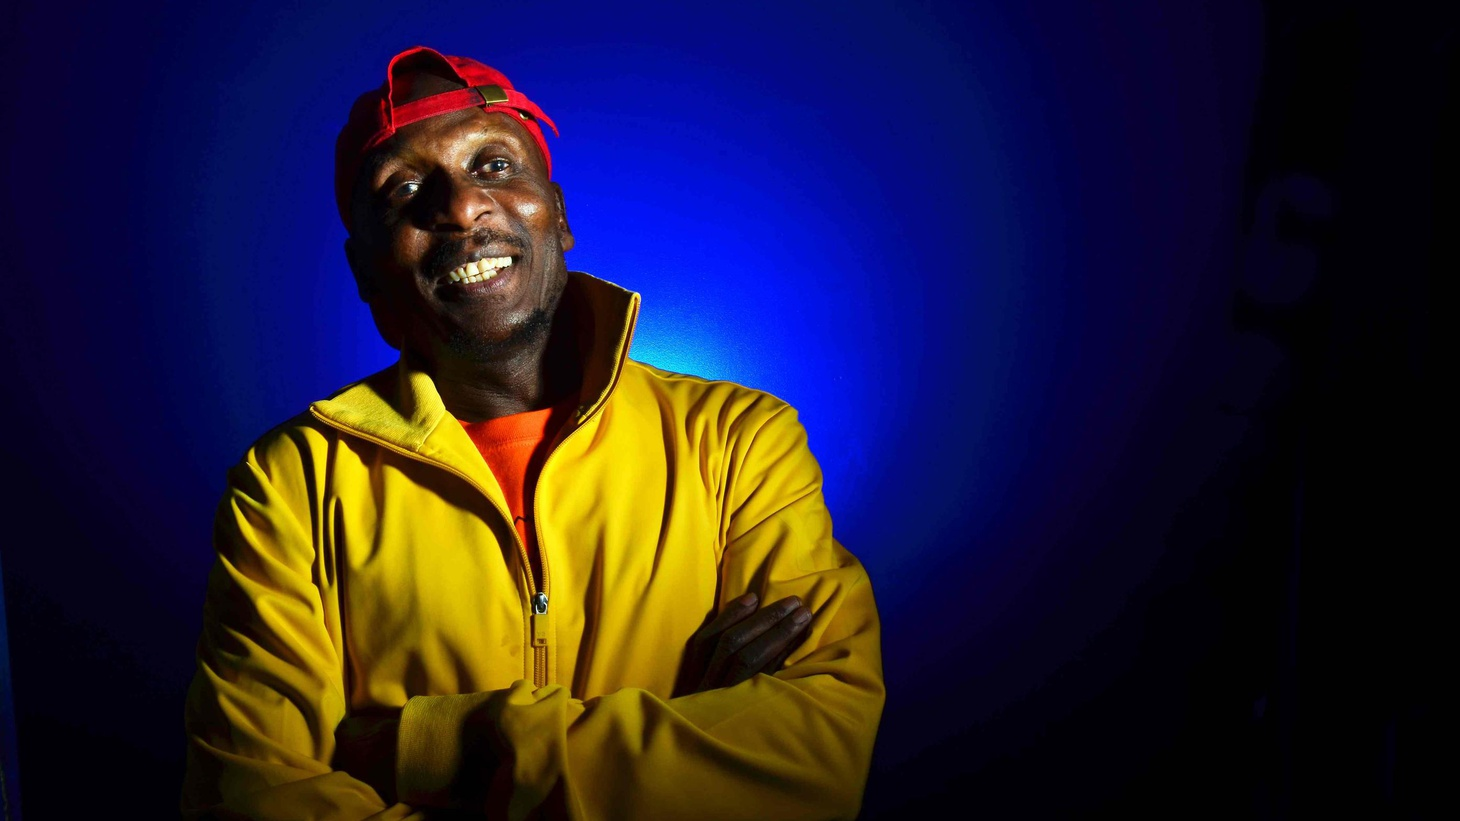 What can we say about Hall of Fame inductee and reggae legend, Jimmy Cliff? His new album -- his first release in seven years - is a strong showing...